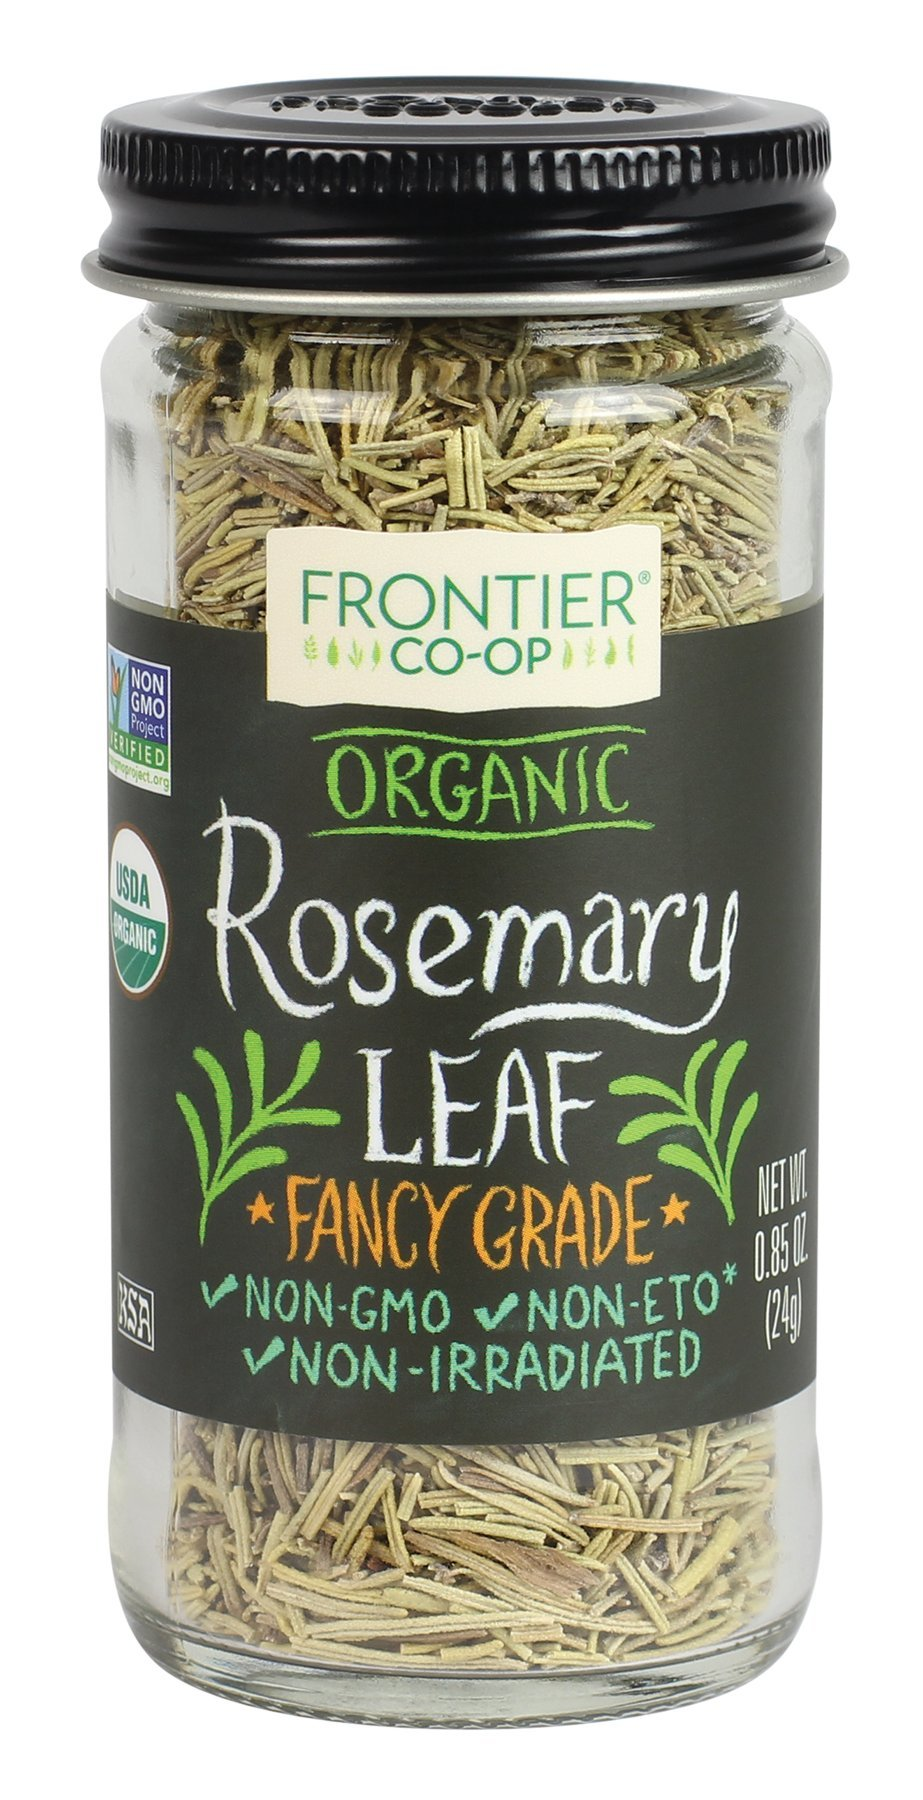 Frontier Natural Products Rosemary Leaf, Og, Whole, 0.85-Ounce by Frontier